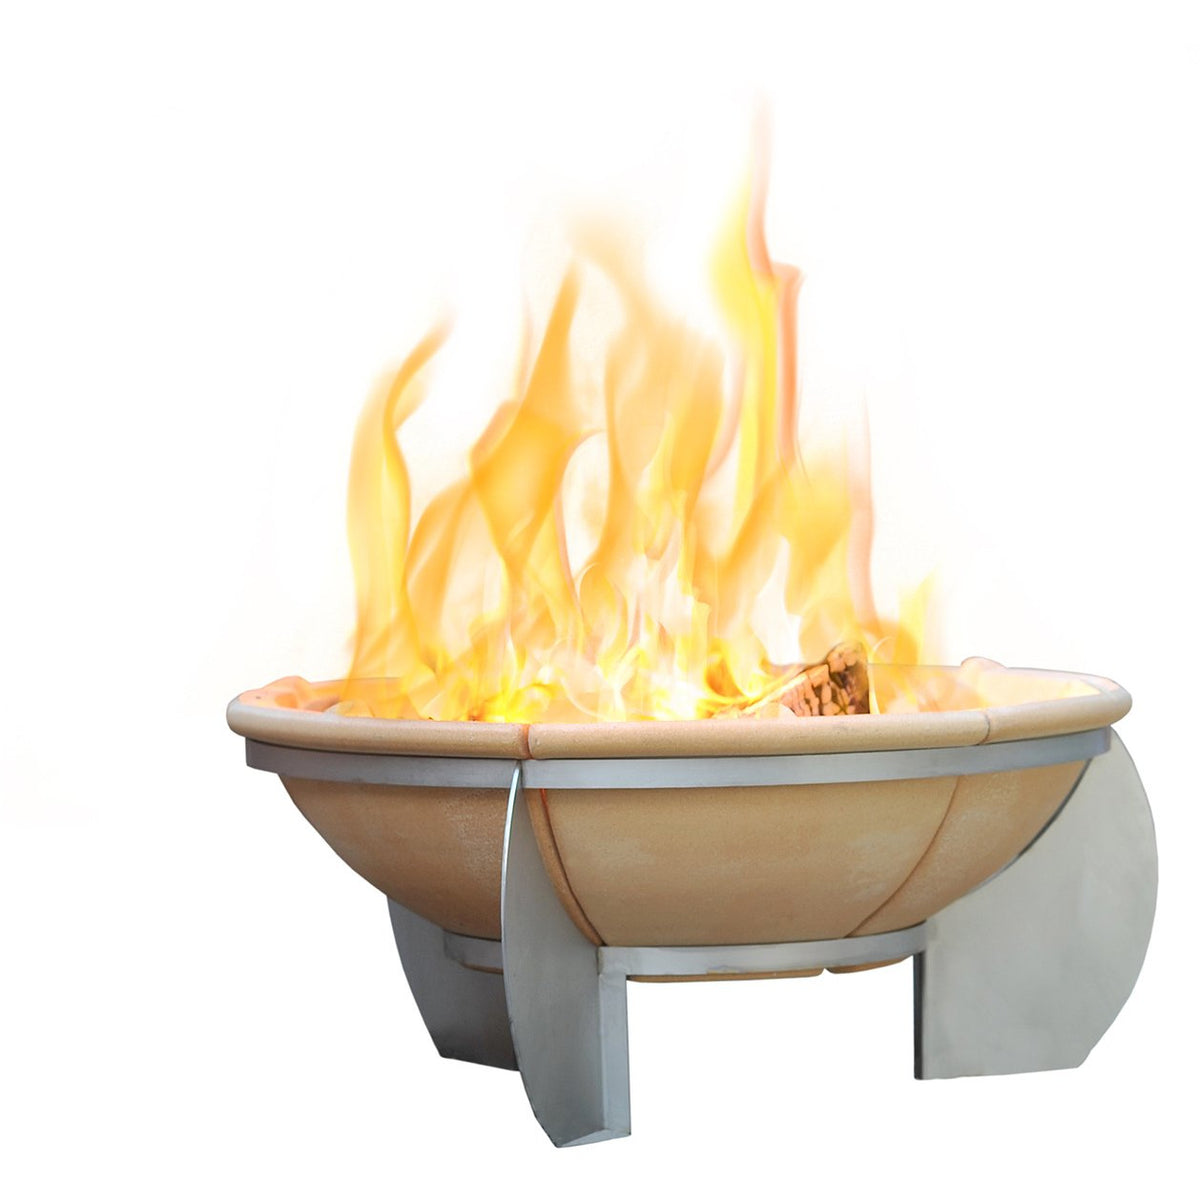 Feurio Brazier Fire Pit with Free Grill - Outdoor Living Essentials